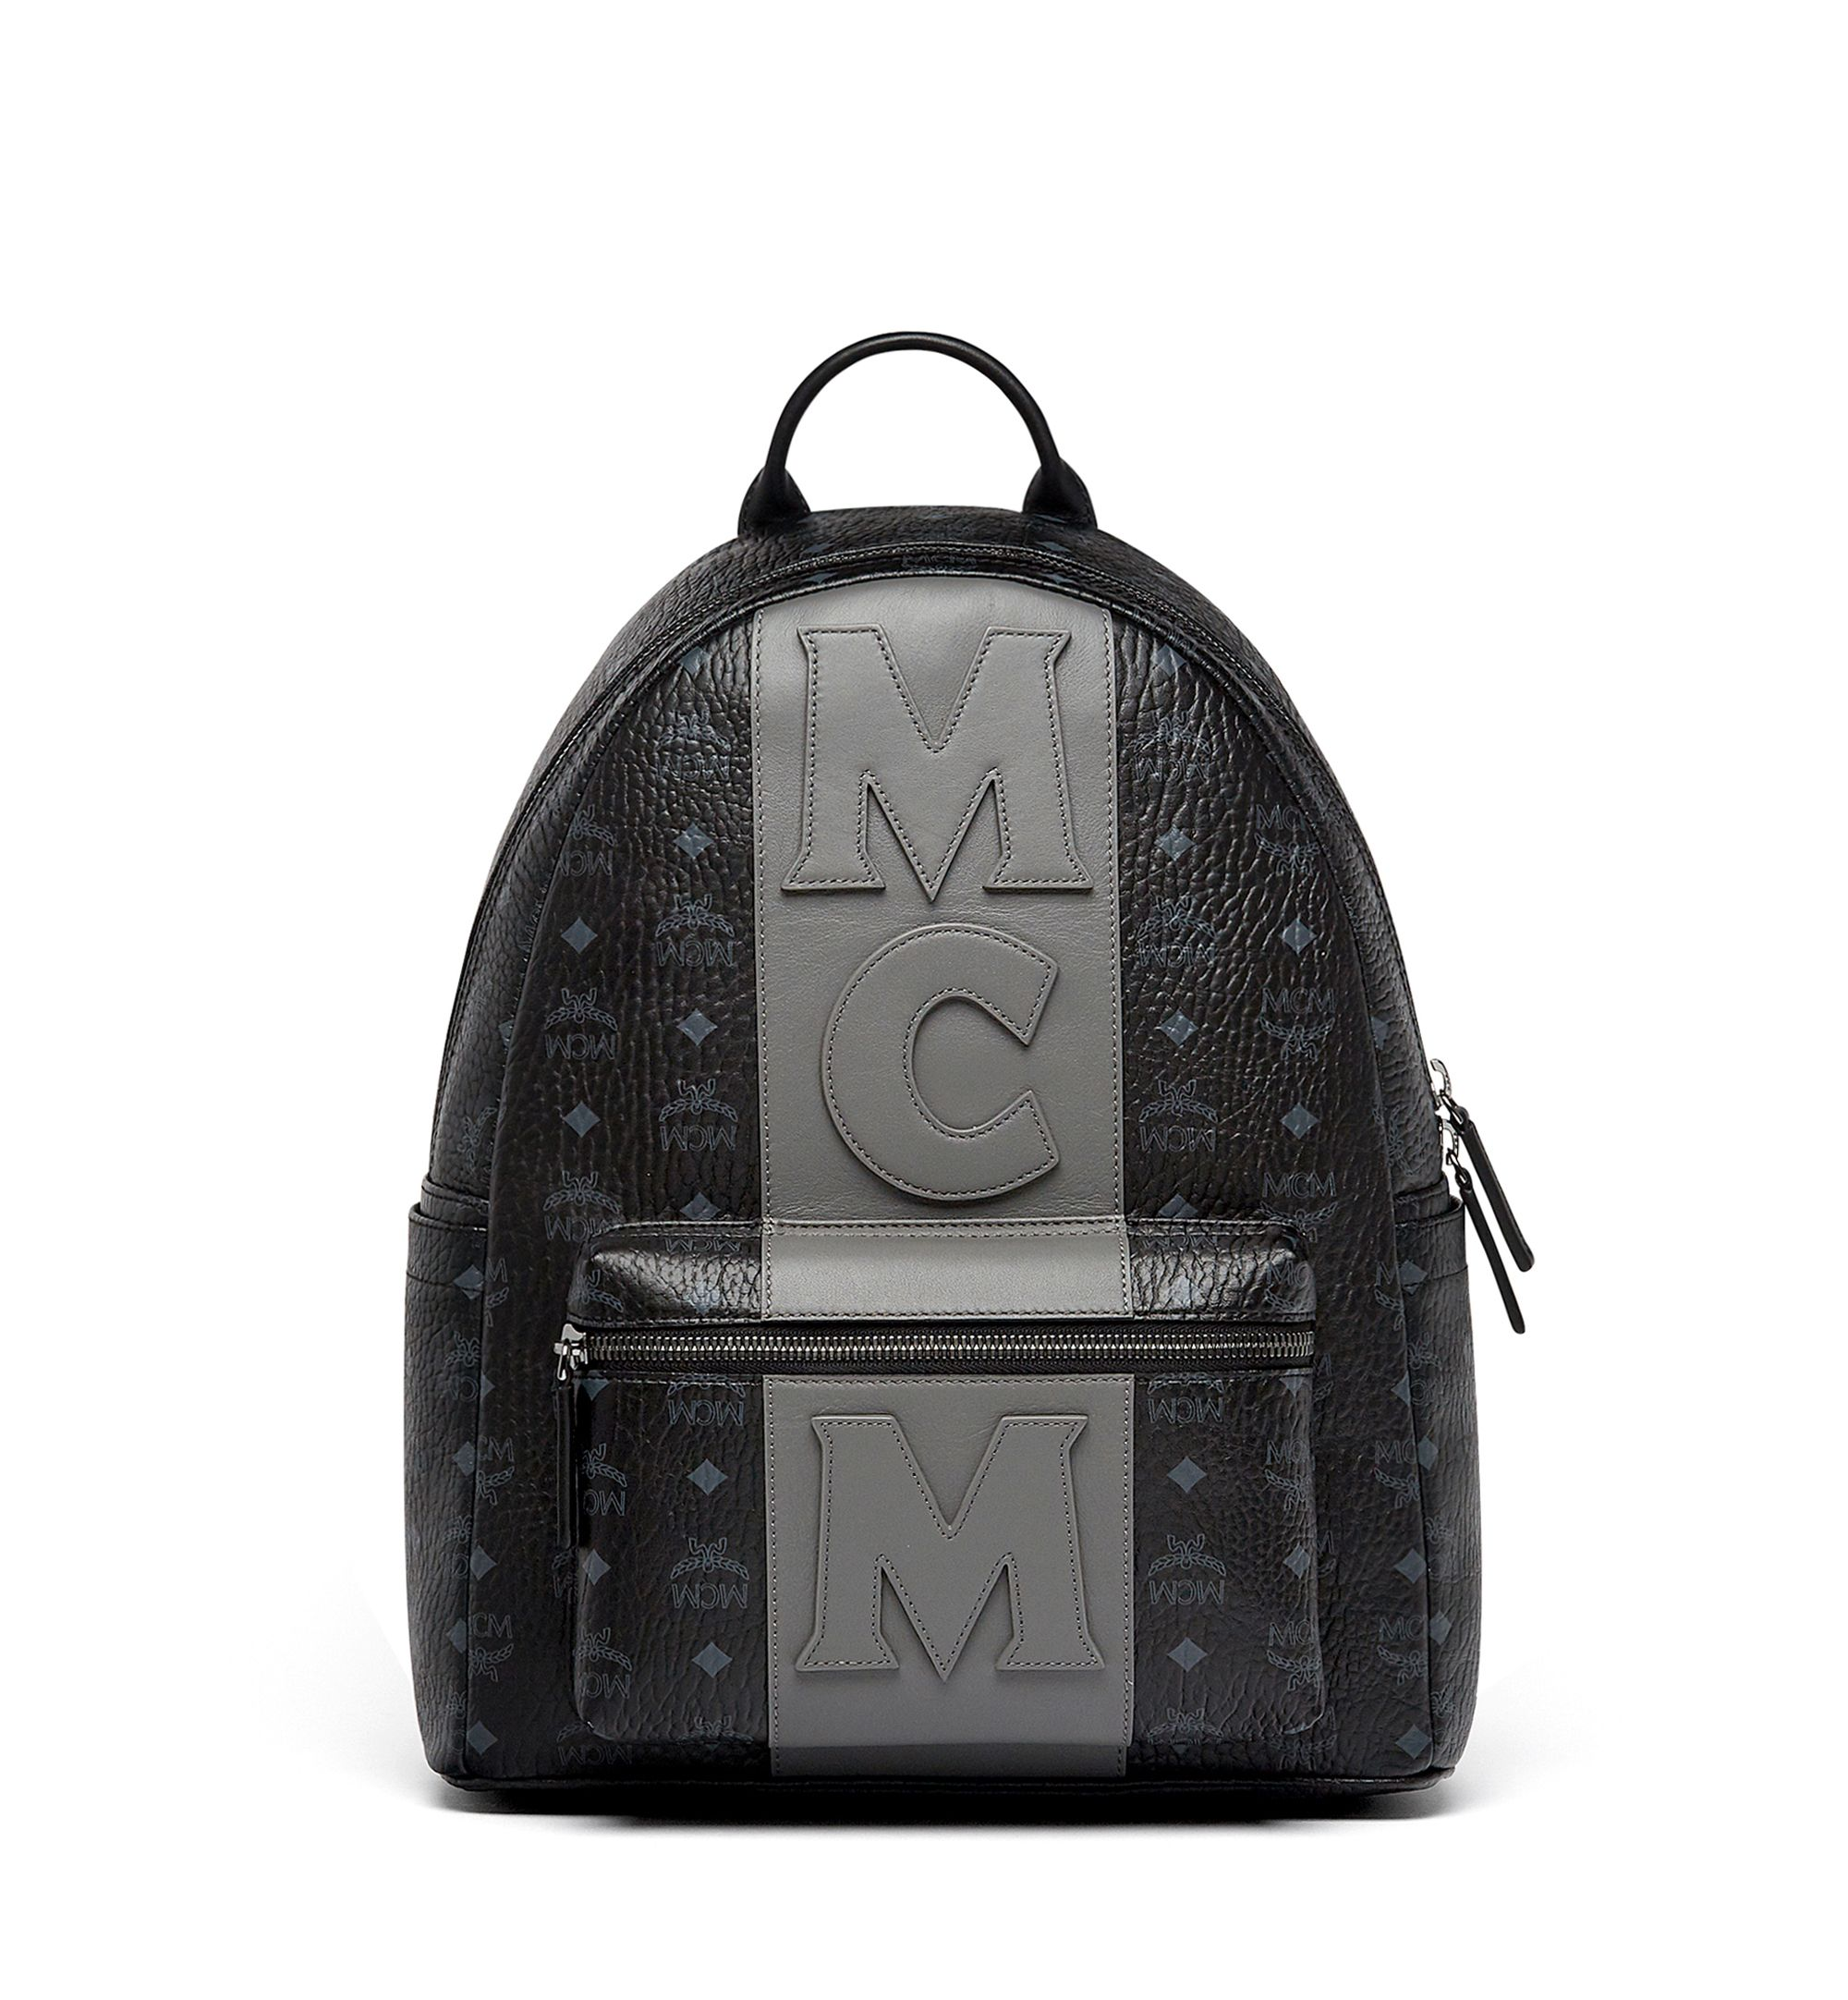 36d74744ac338e  820 MCM Backpack - SOLD by MCM - affiliate - Medium Stark Stripe Backpack  in Visetos in Black - color-block take on our classic Visetos backpack.